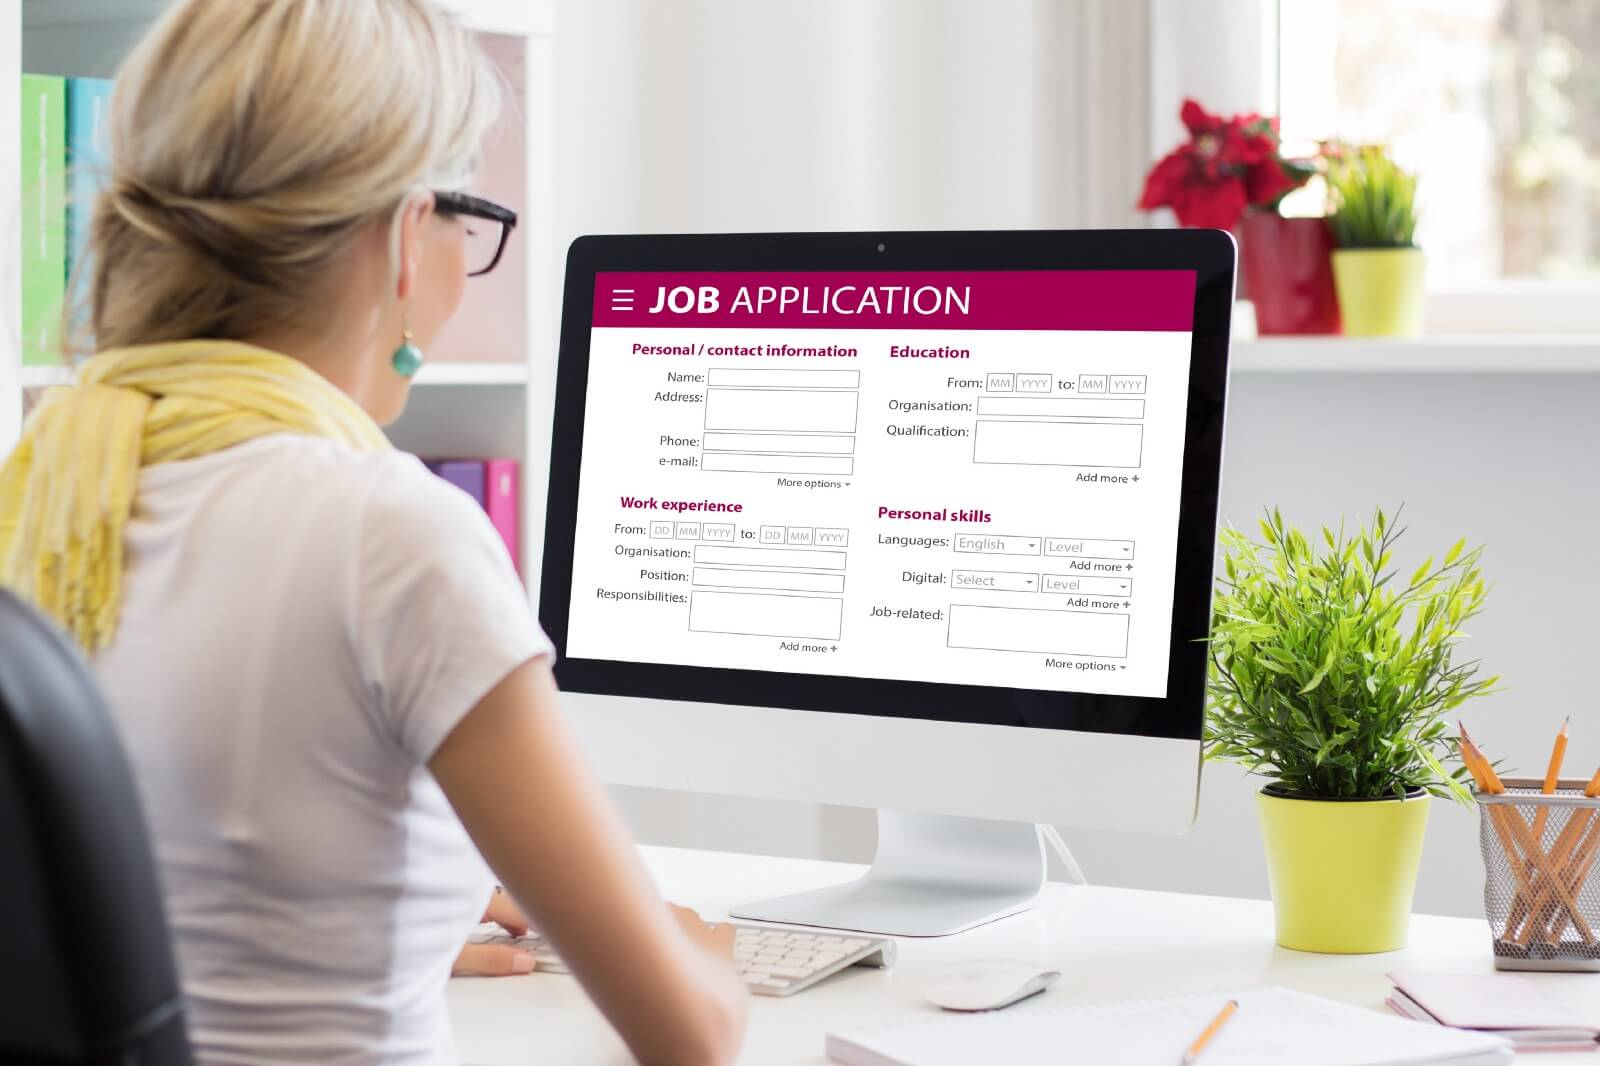 Woman sitting at business desk filling out digital job application